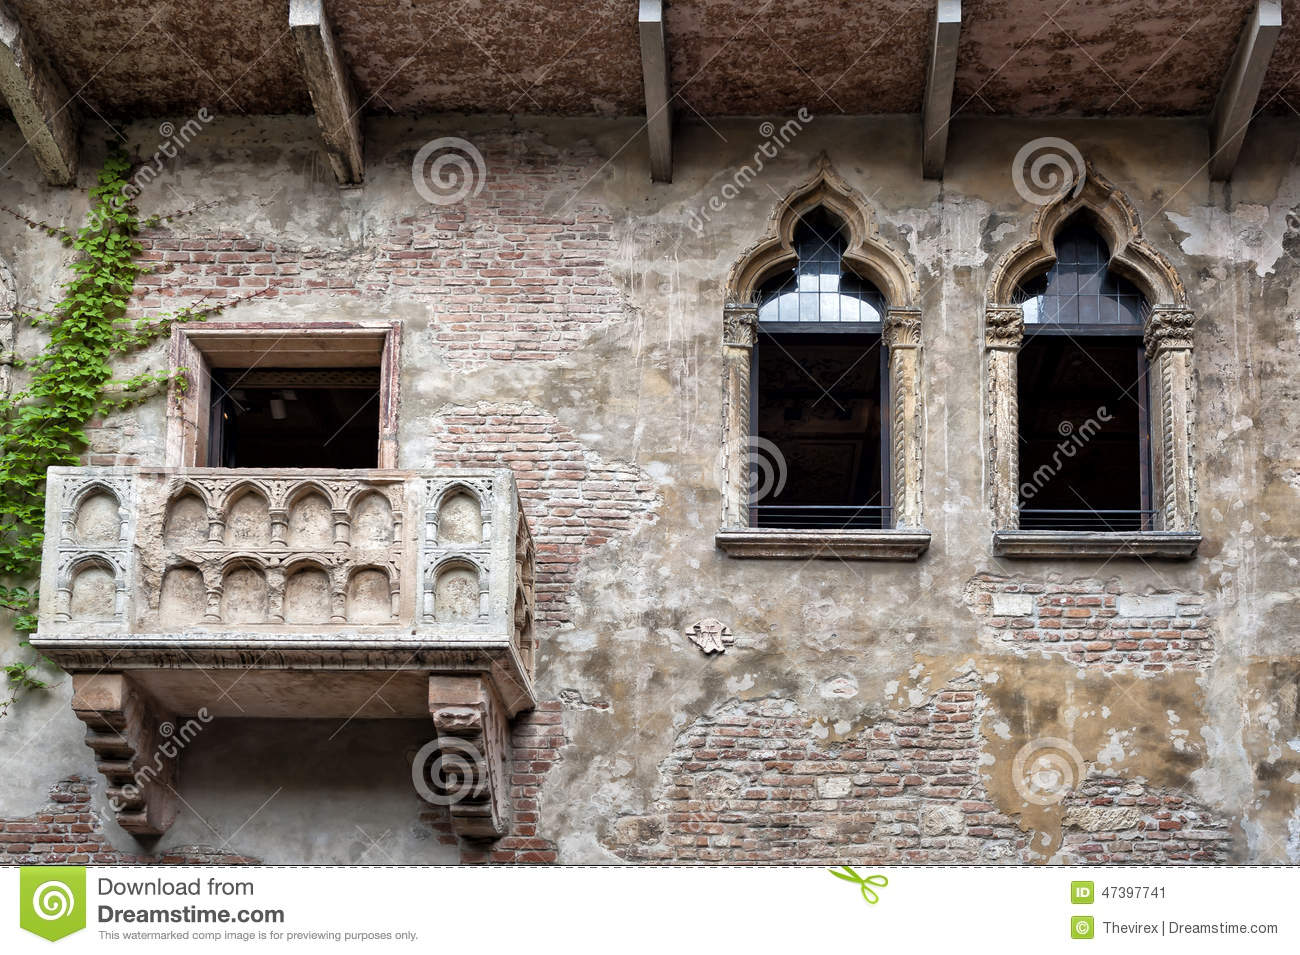 romeo and juliet dreams visions and Free summary and analysis of act 1, scene 4 in william shakespeare's romeo and juliet that won't make you snore we promise.